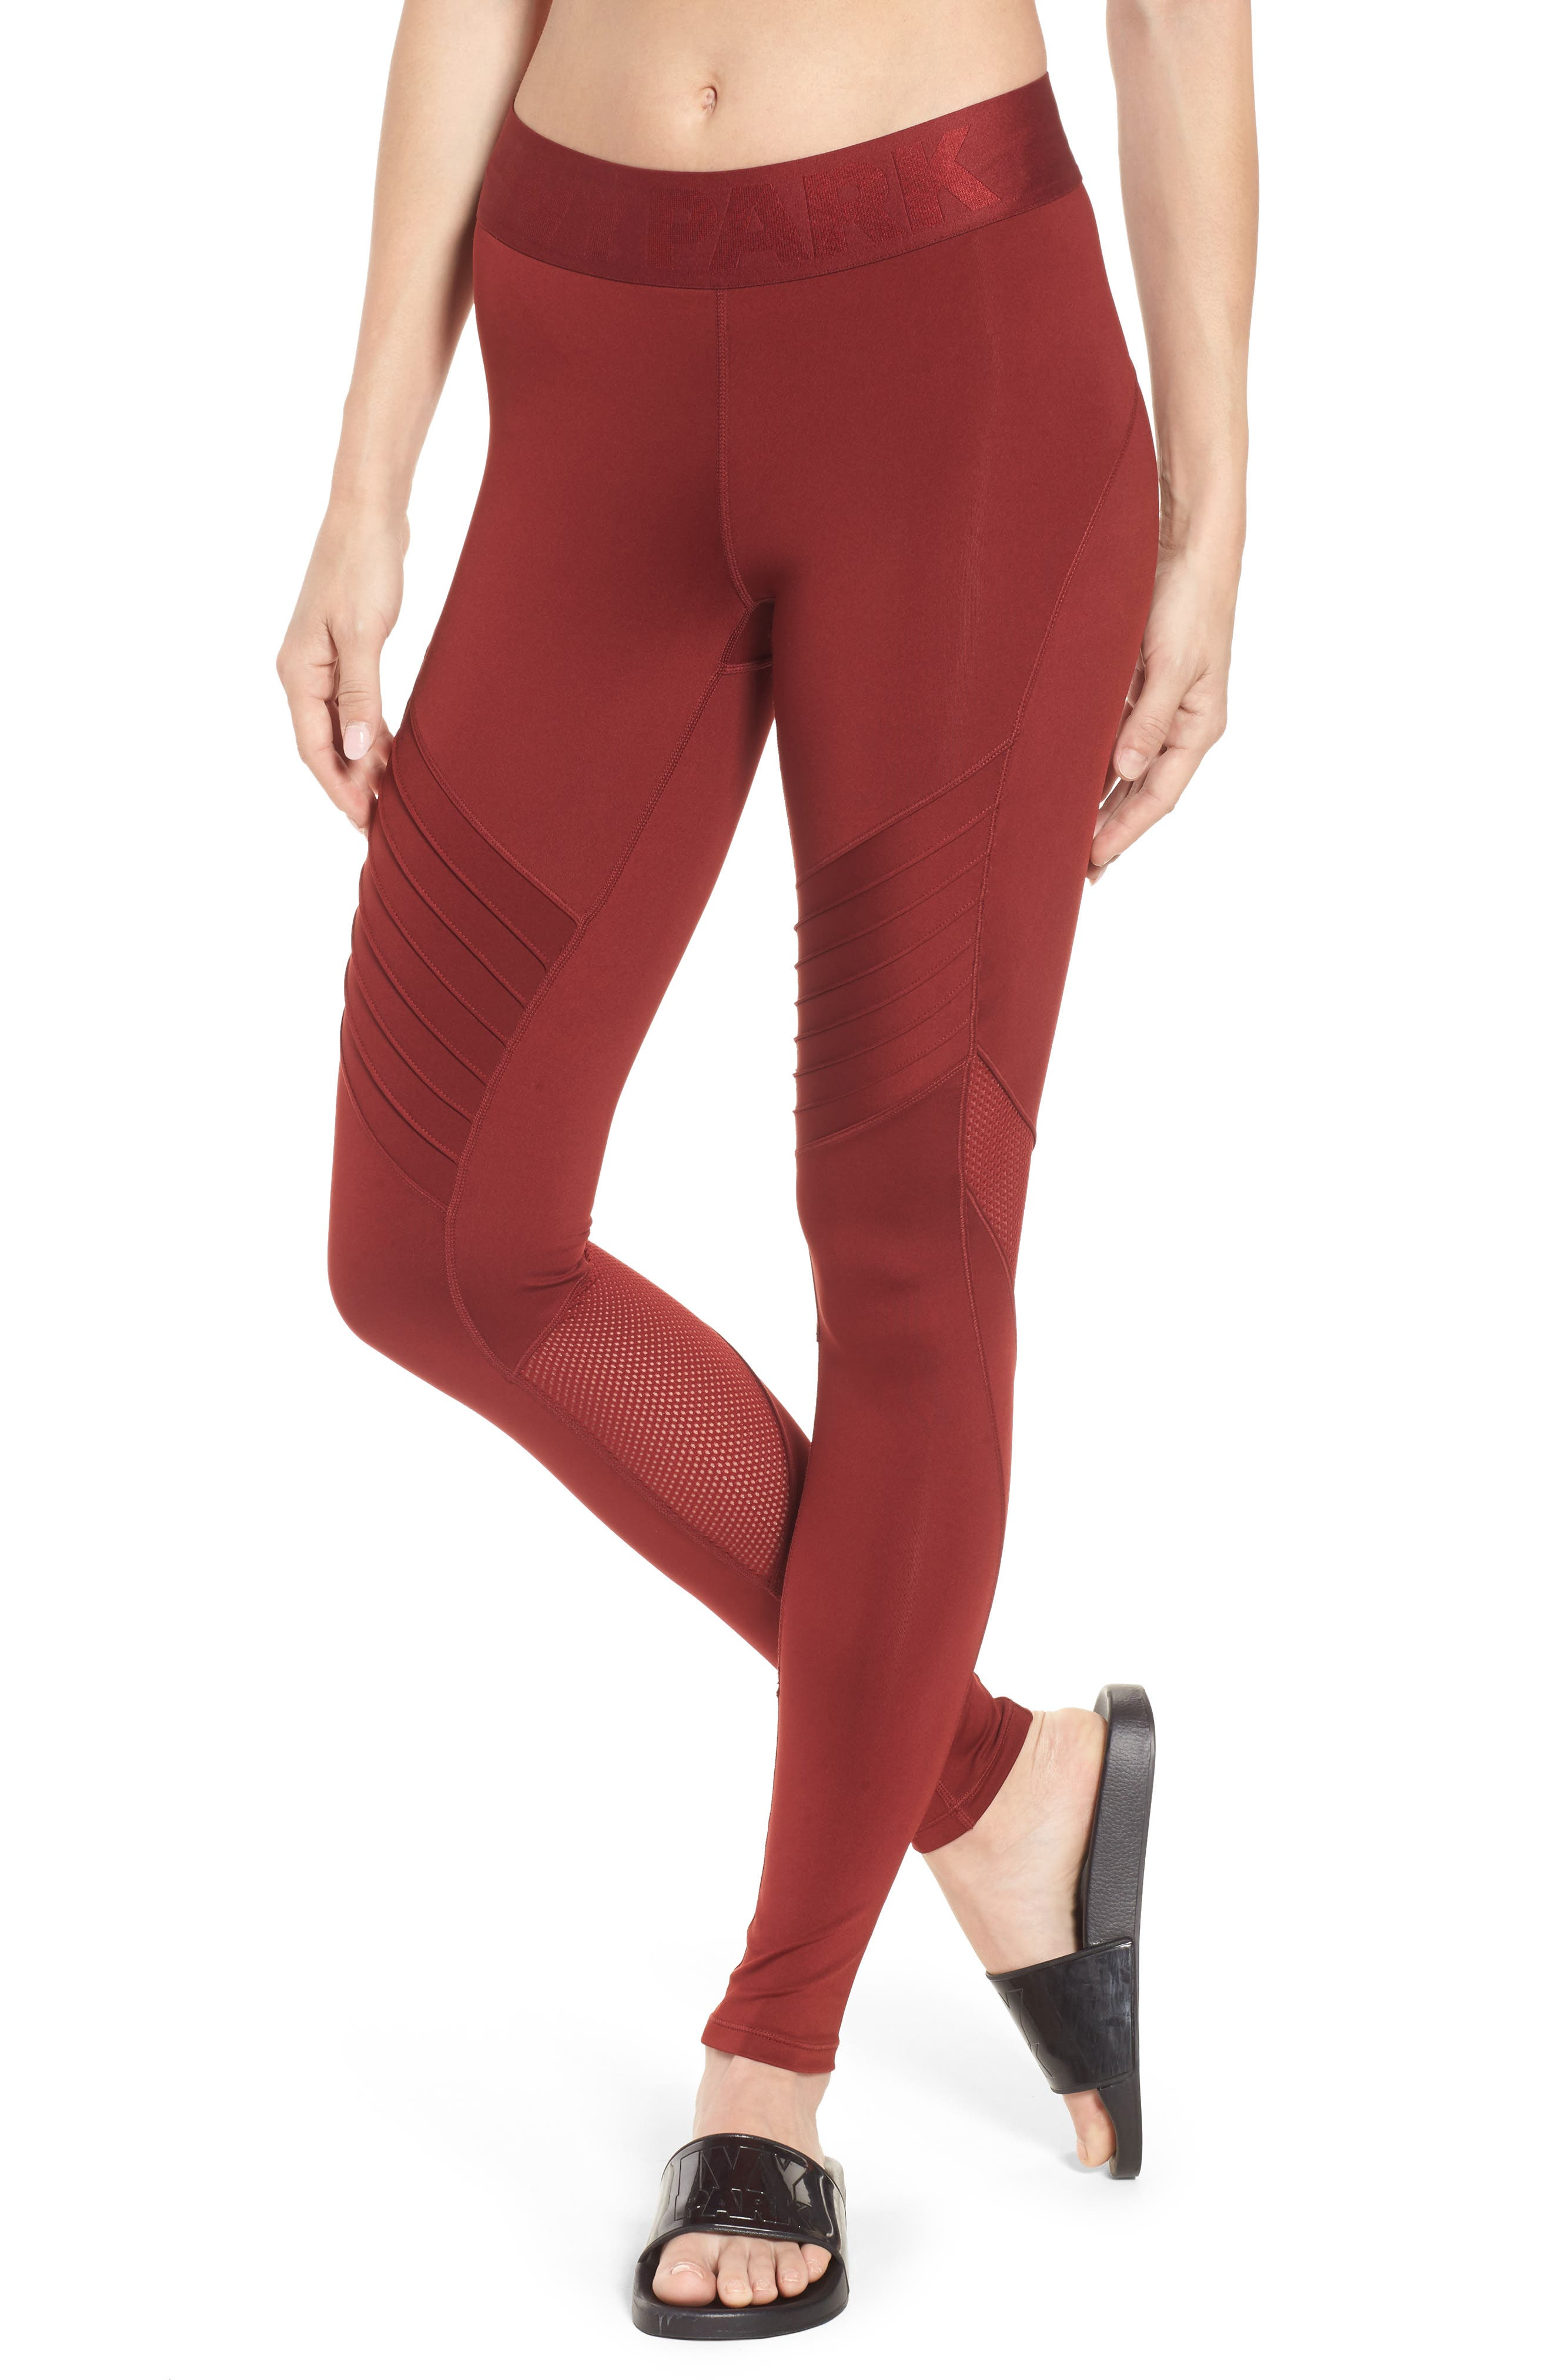 Pintuck Leggings,                             Main thumbnail 1, color,                             Russet